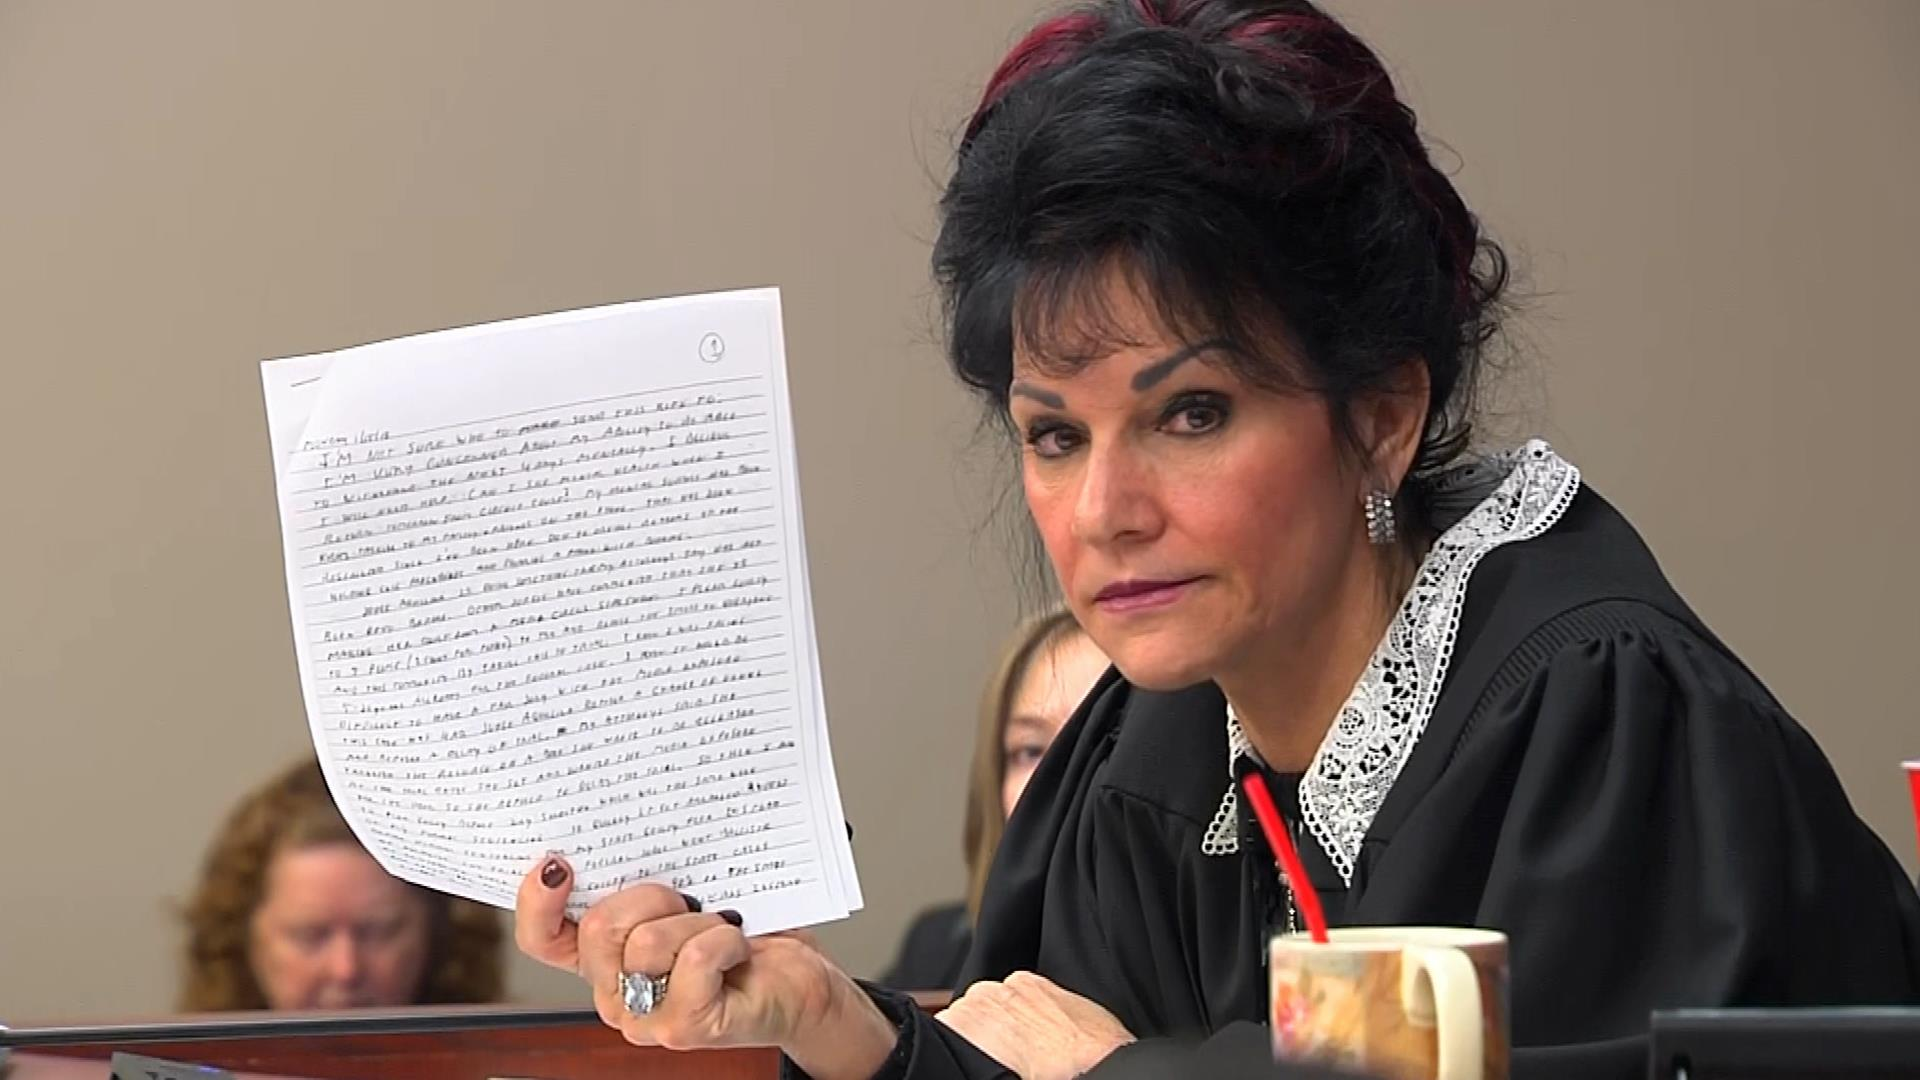 Judge Aquilina slams Larry Nassar's letter about sentencing